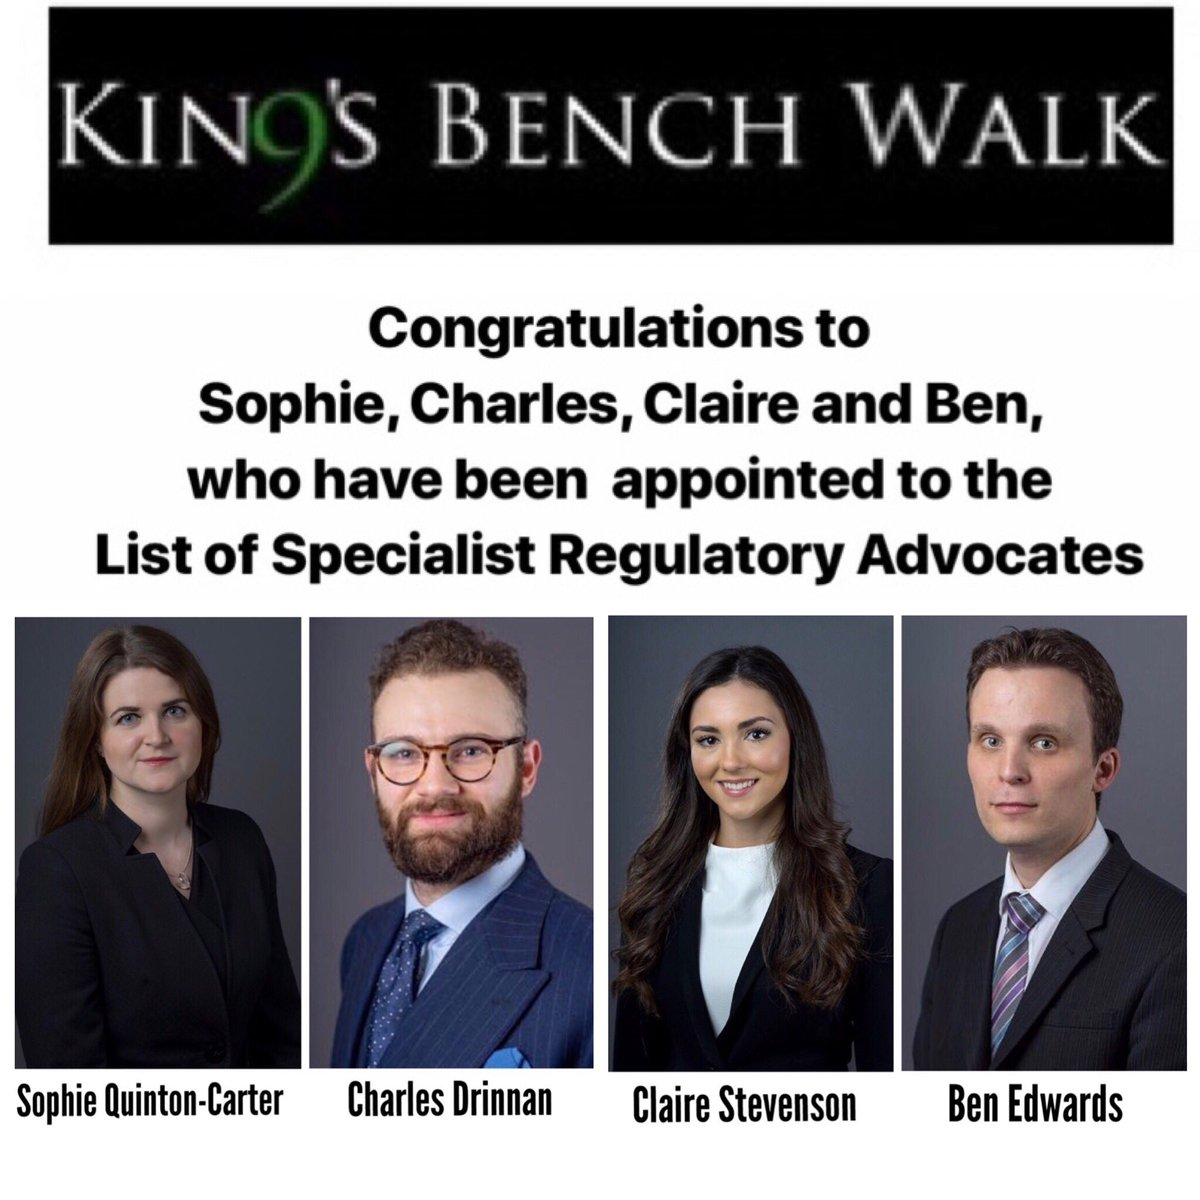 9KBW Congratulates Sophiebatbouche Charles Claire ClaireStevens0n And Ben EdwB28 For Being Appointed To The List Of Specialist Regulatory